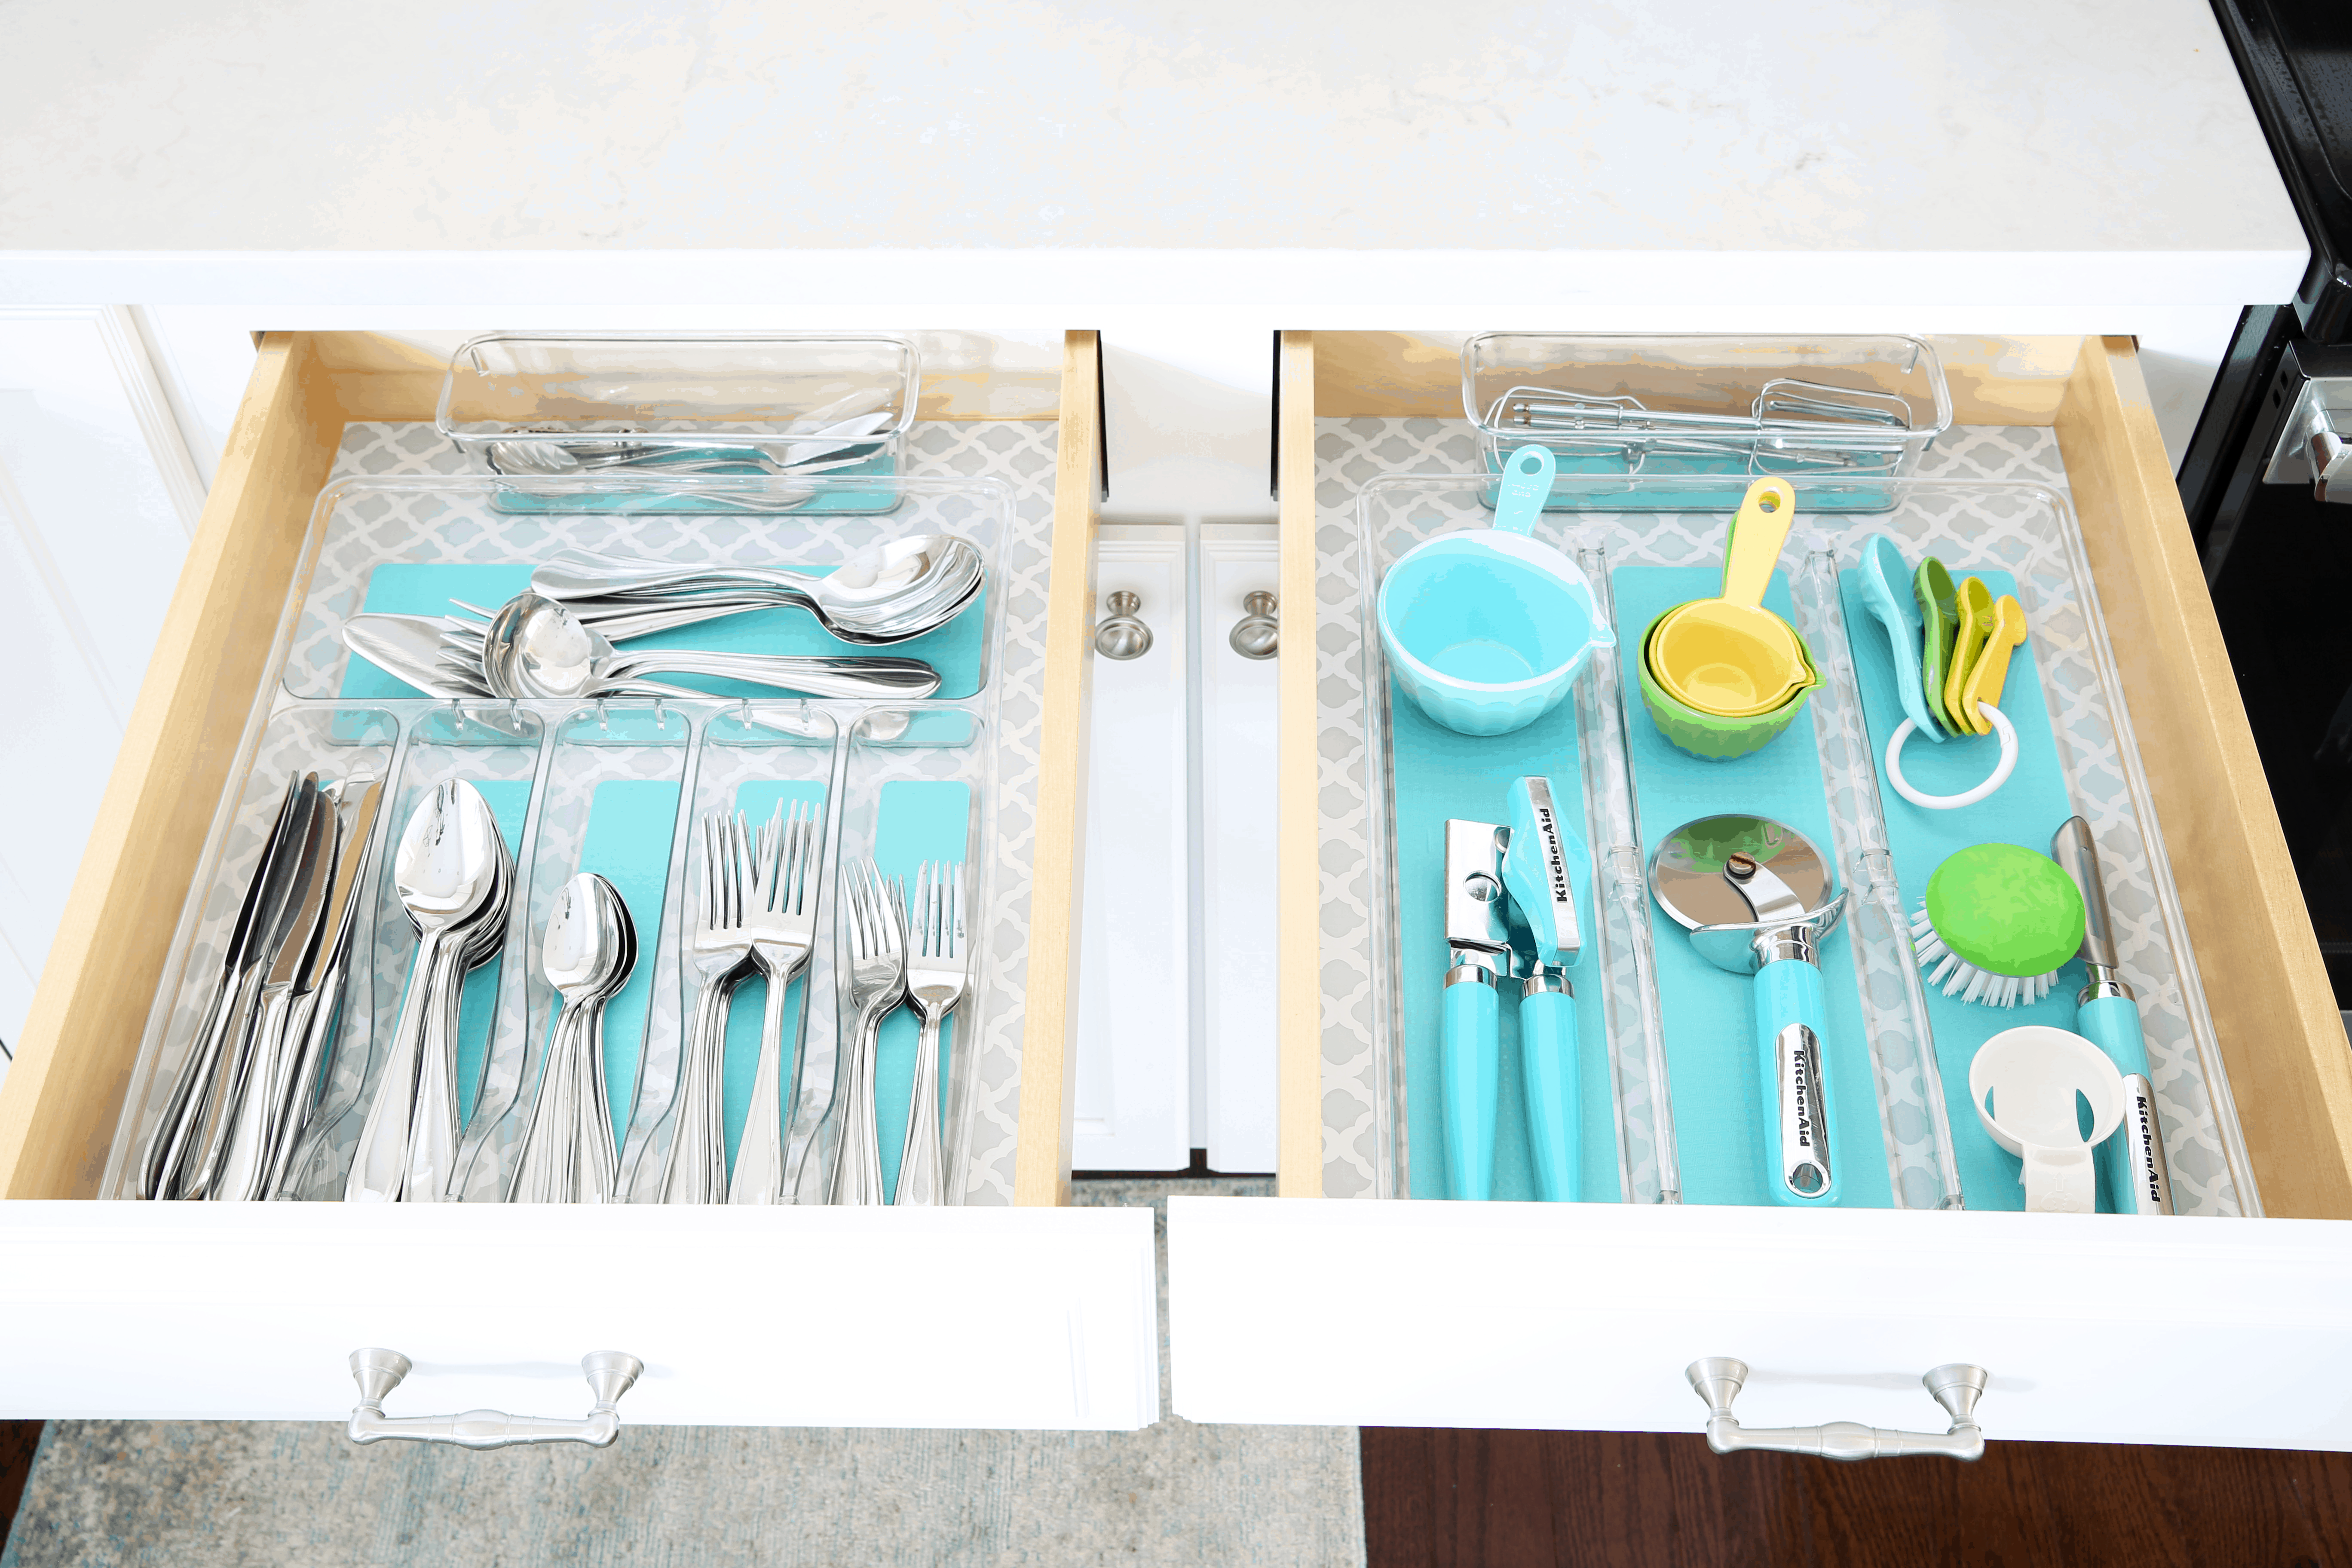 Top 10 Best Organizing Items from Target - Just a Girl and Her Blog